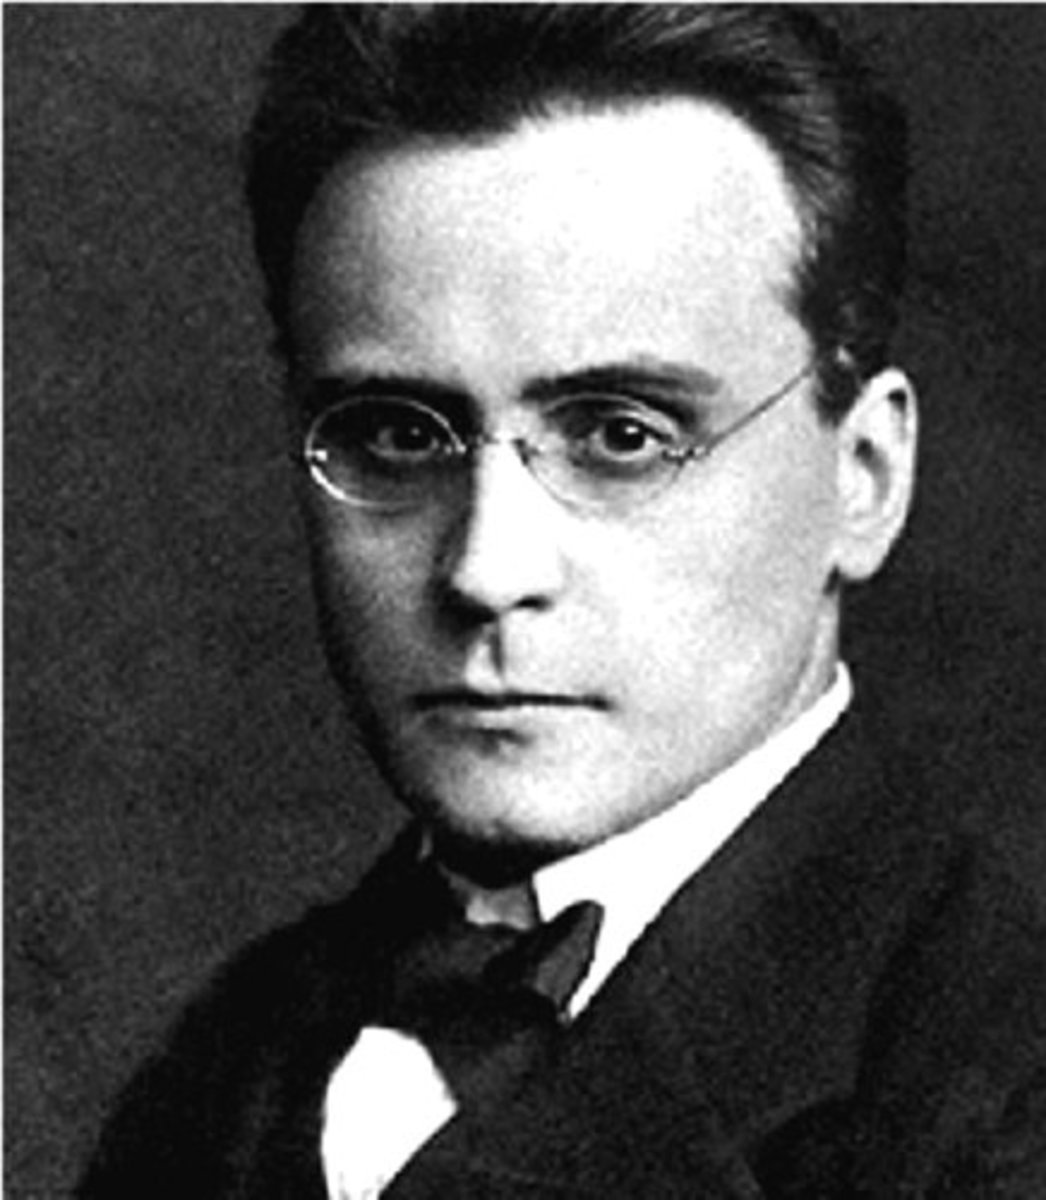 Photograph of Webern, 1912.